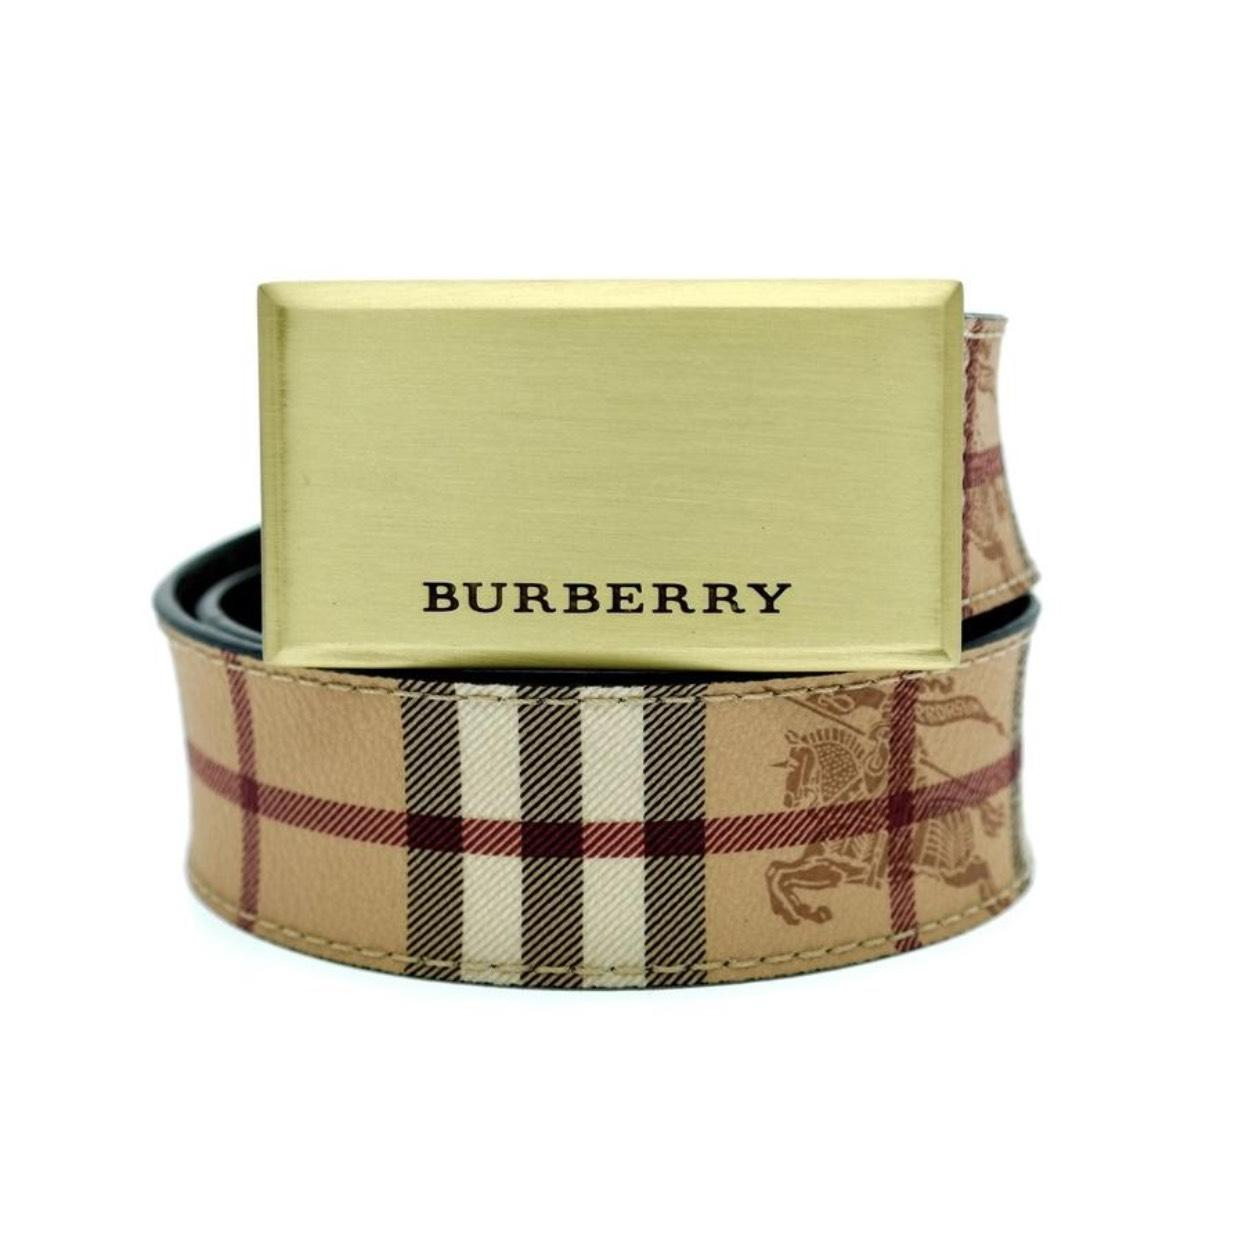 burberry factory outlet prices k4wx  burberry factory shop online